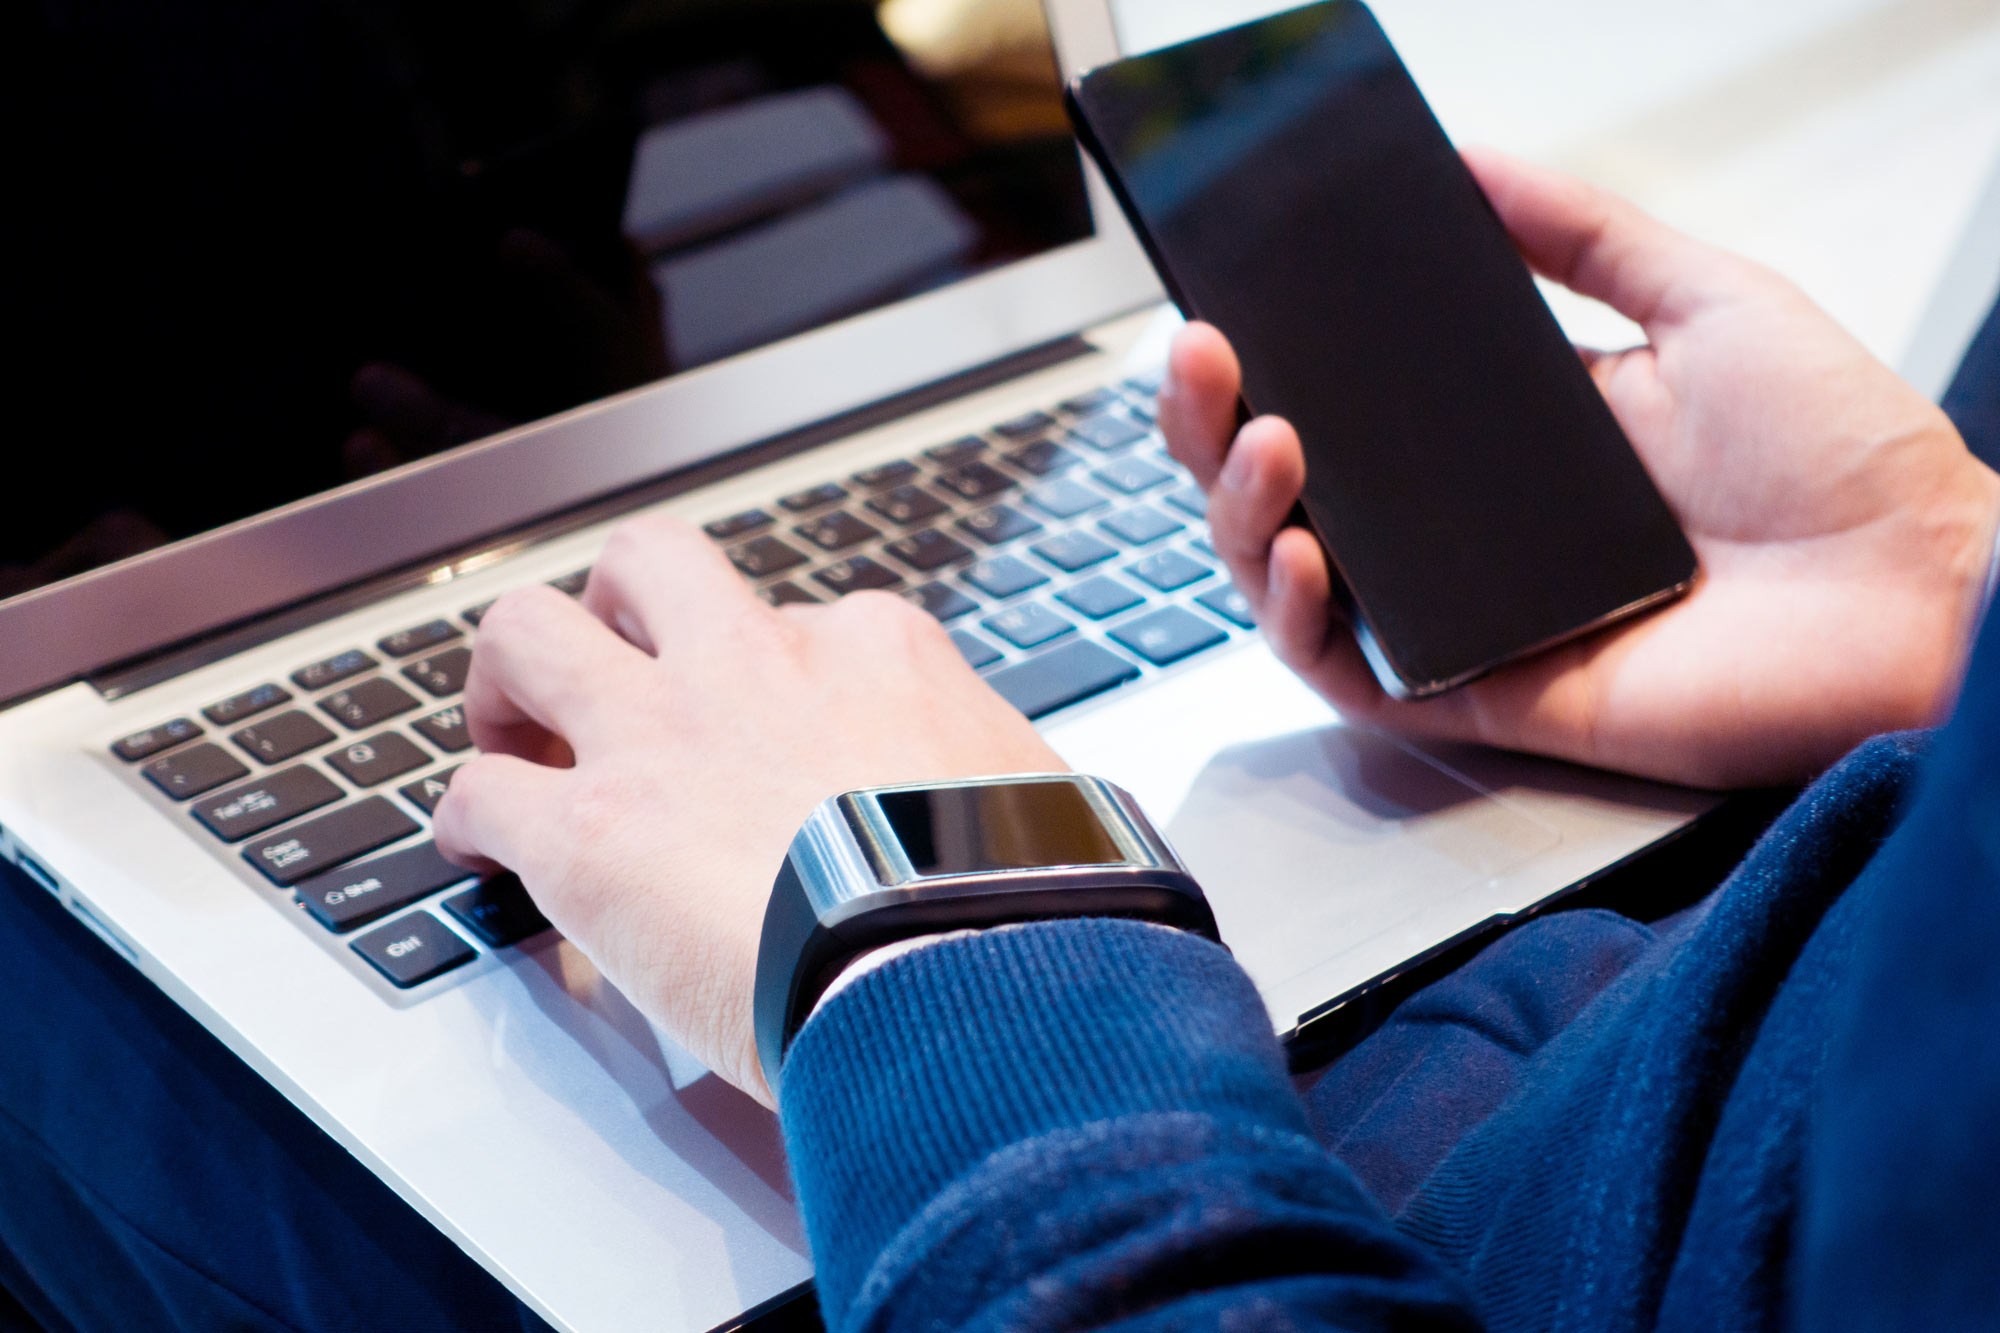 Is there such thing as too much technology? Photo: iStock.